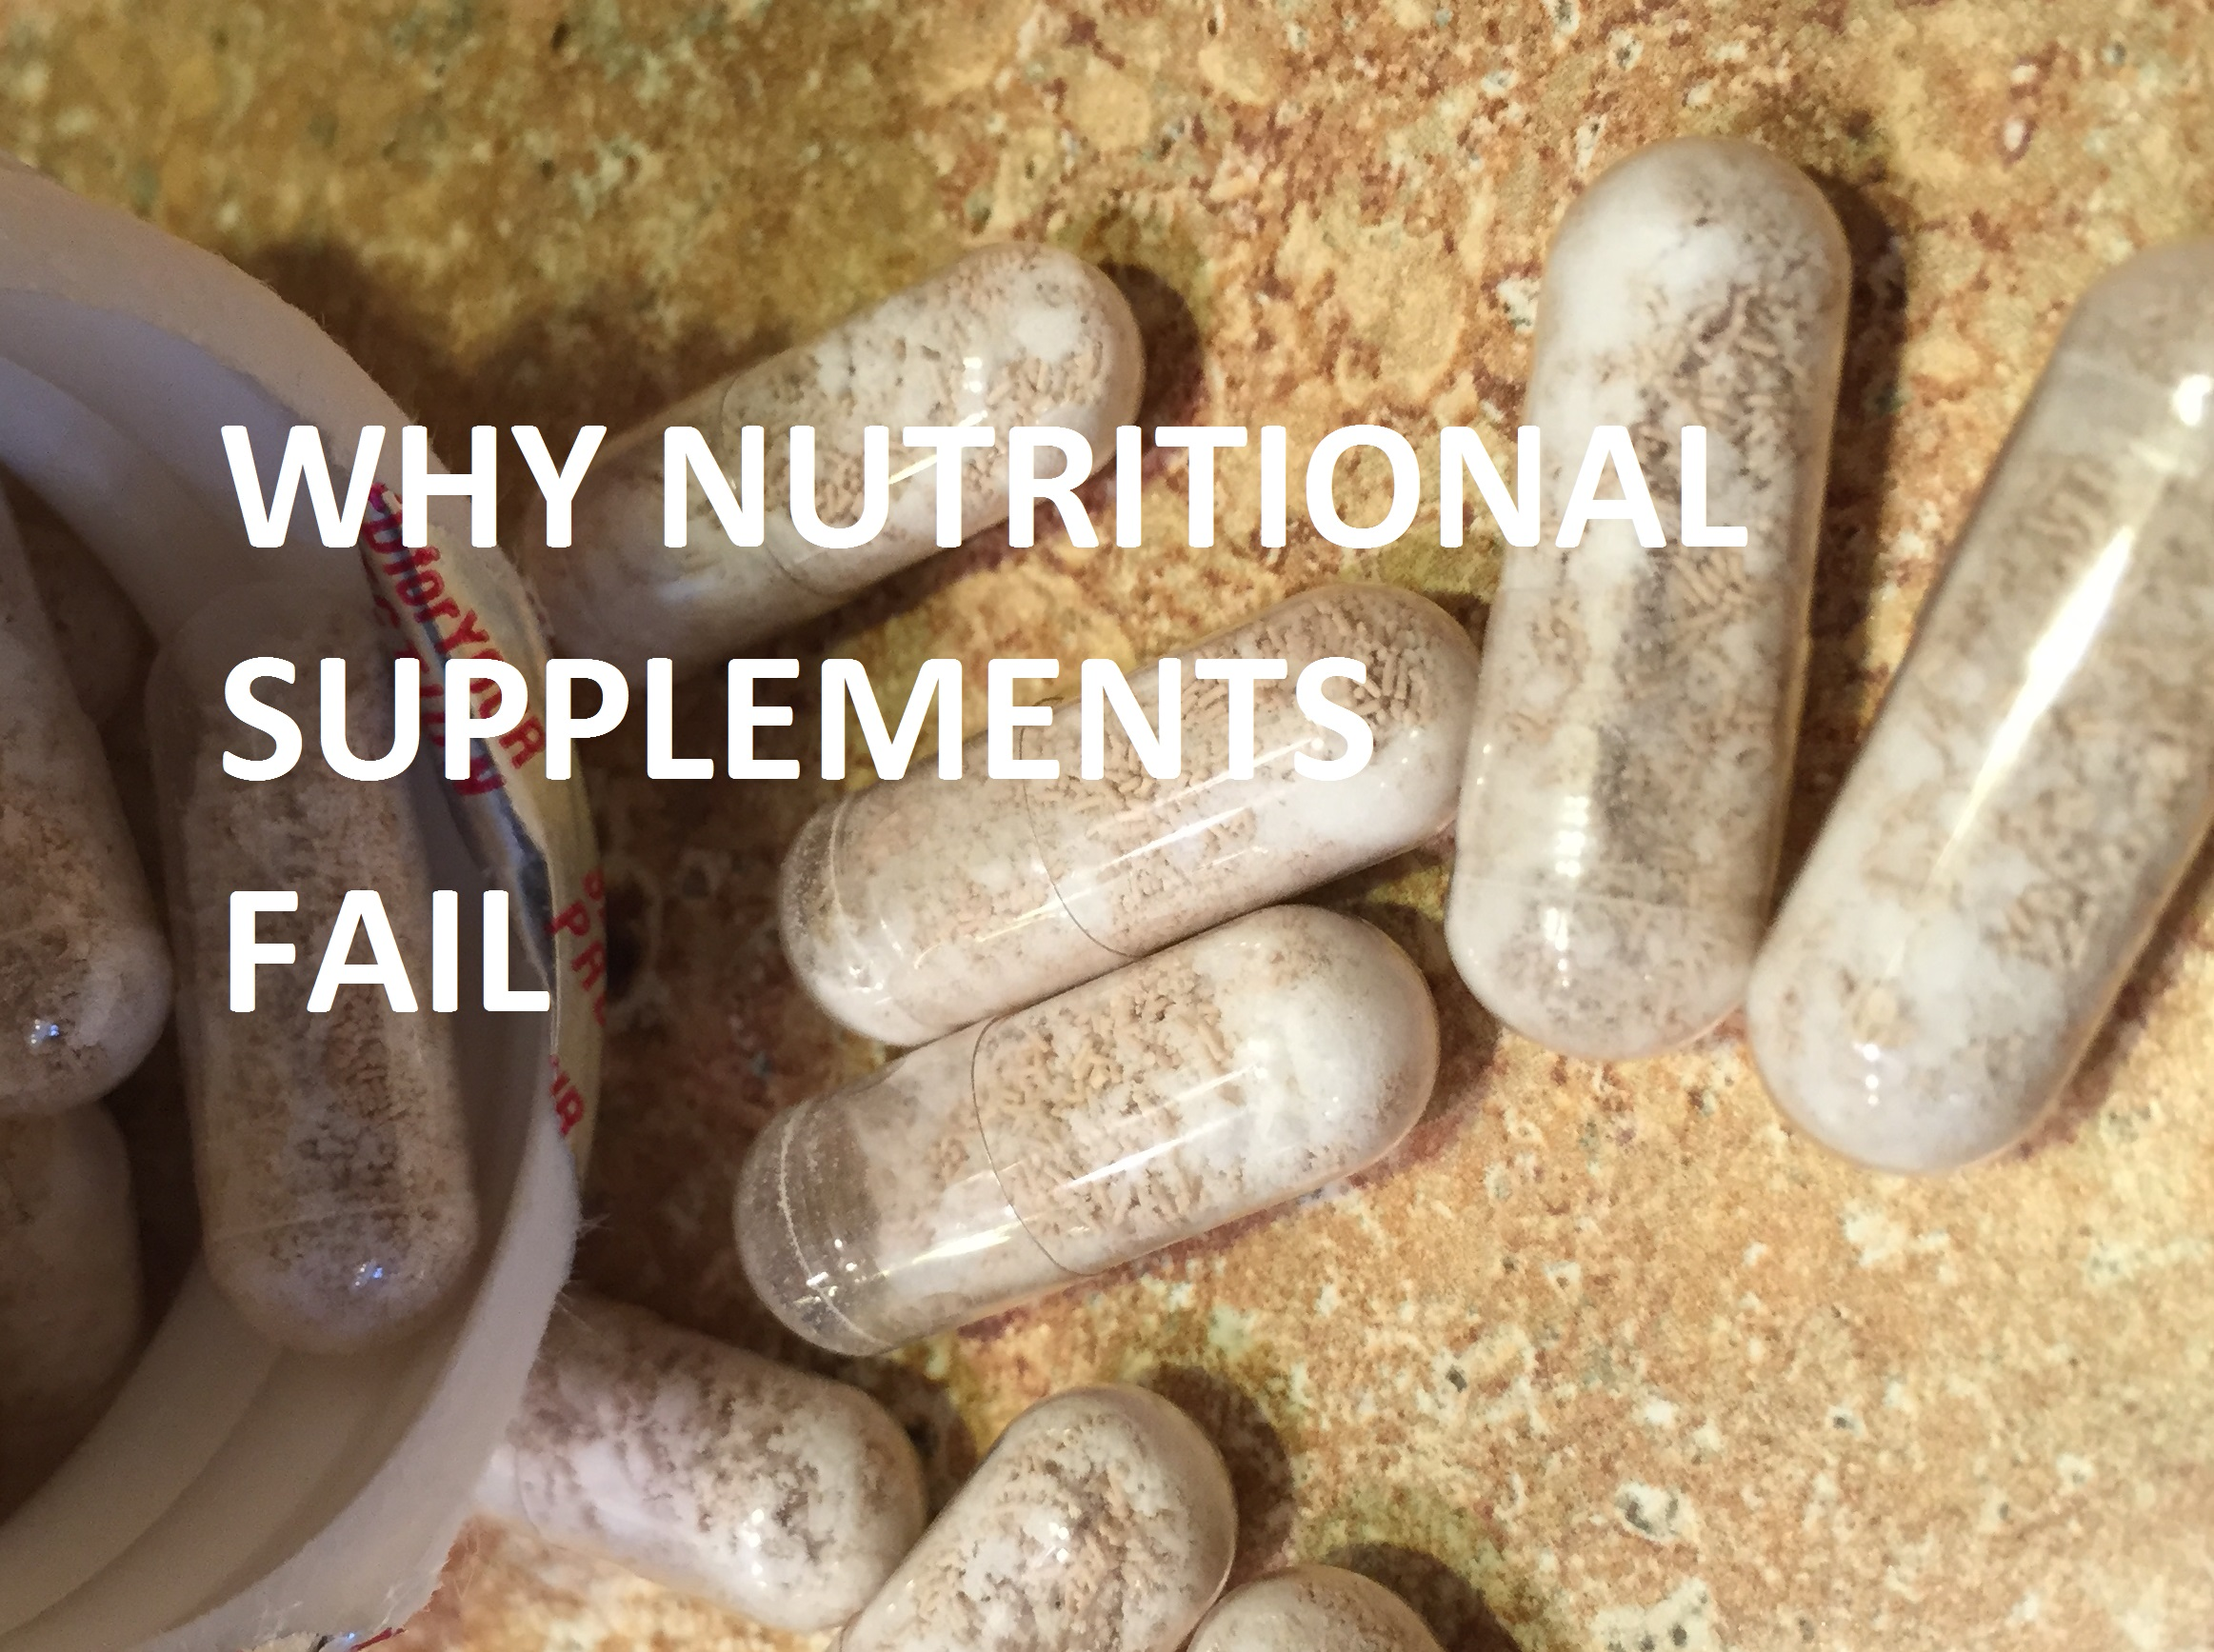 Why Nutritional Supplement Therapy Often Fails